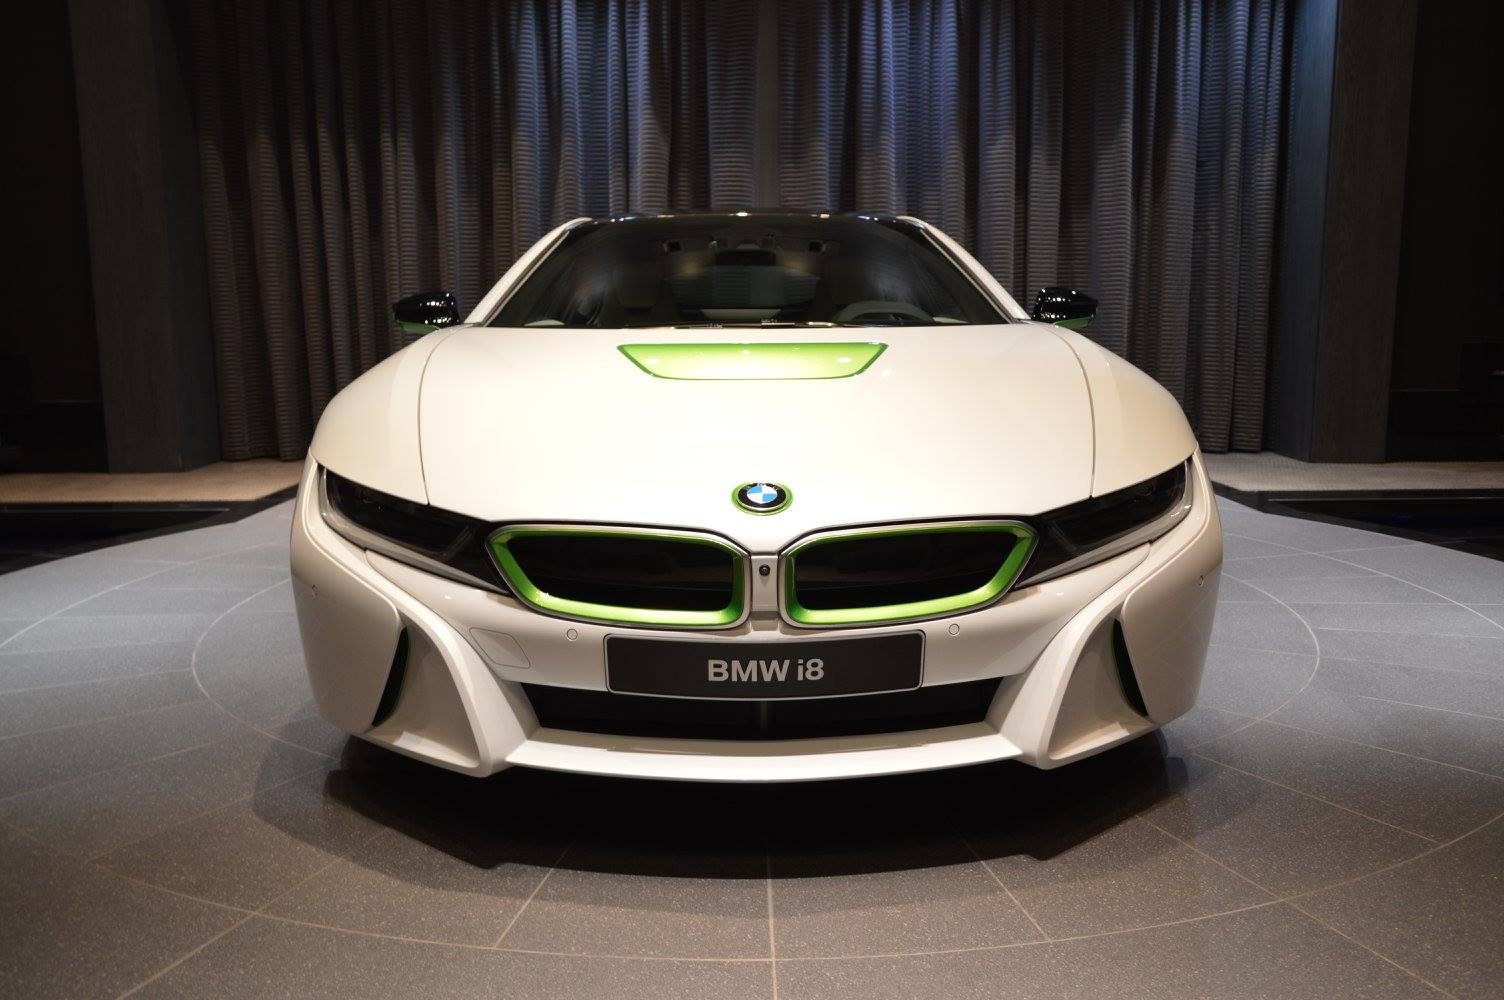 2017 BMW I8 To Have More Power And Longer Range